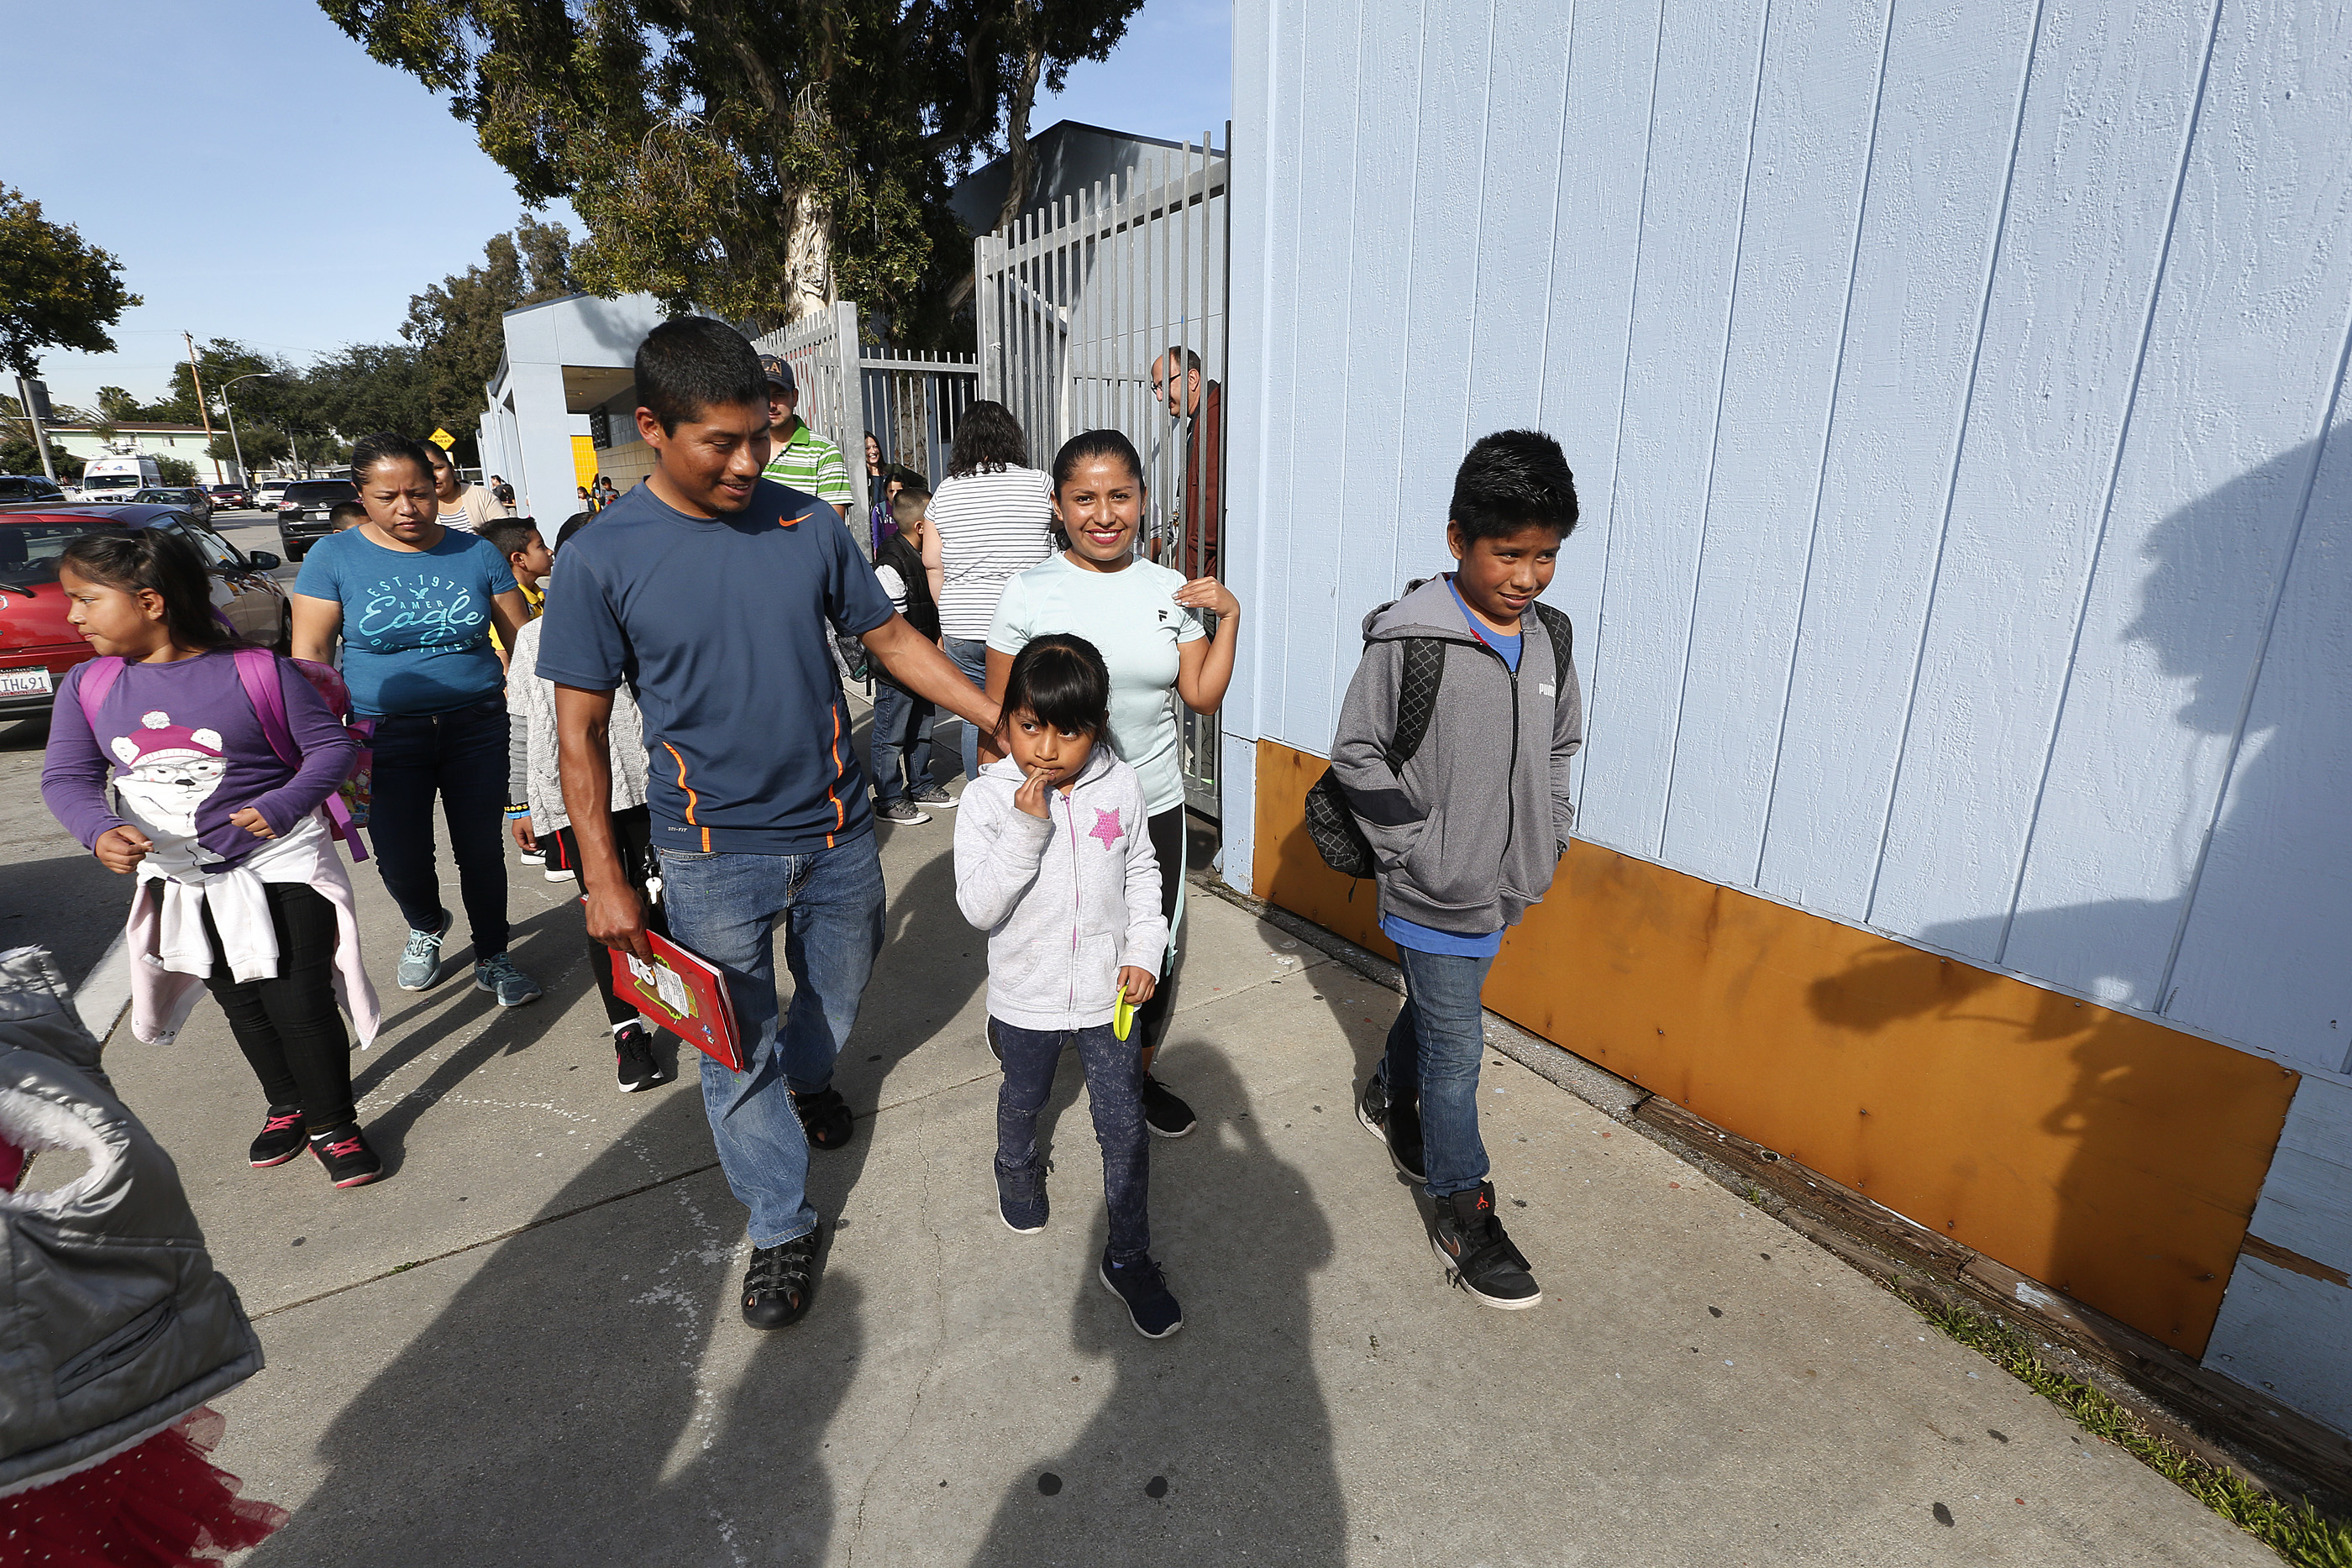 02/13/17 /LOS ANGELES/Apolinar Hernandez with his wife Felicia Flores pick up their school children from Montana Avenue Elementary School in South Gate. According to school officials, a third-grade teacher atÊMontana Avenue Elementary died of bacterialÊmeningitis.ÊÊ Health officials have not released the name of the teacher, but school and health officials met with parents on campus to address their concerns. (Photo Aurelia Ventura/La Opinion)